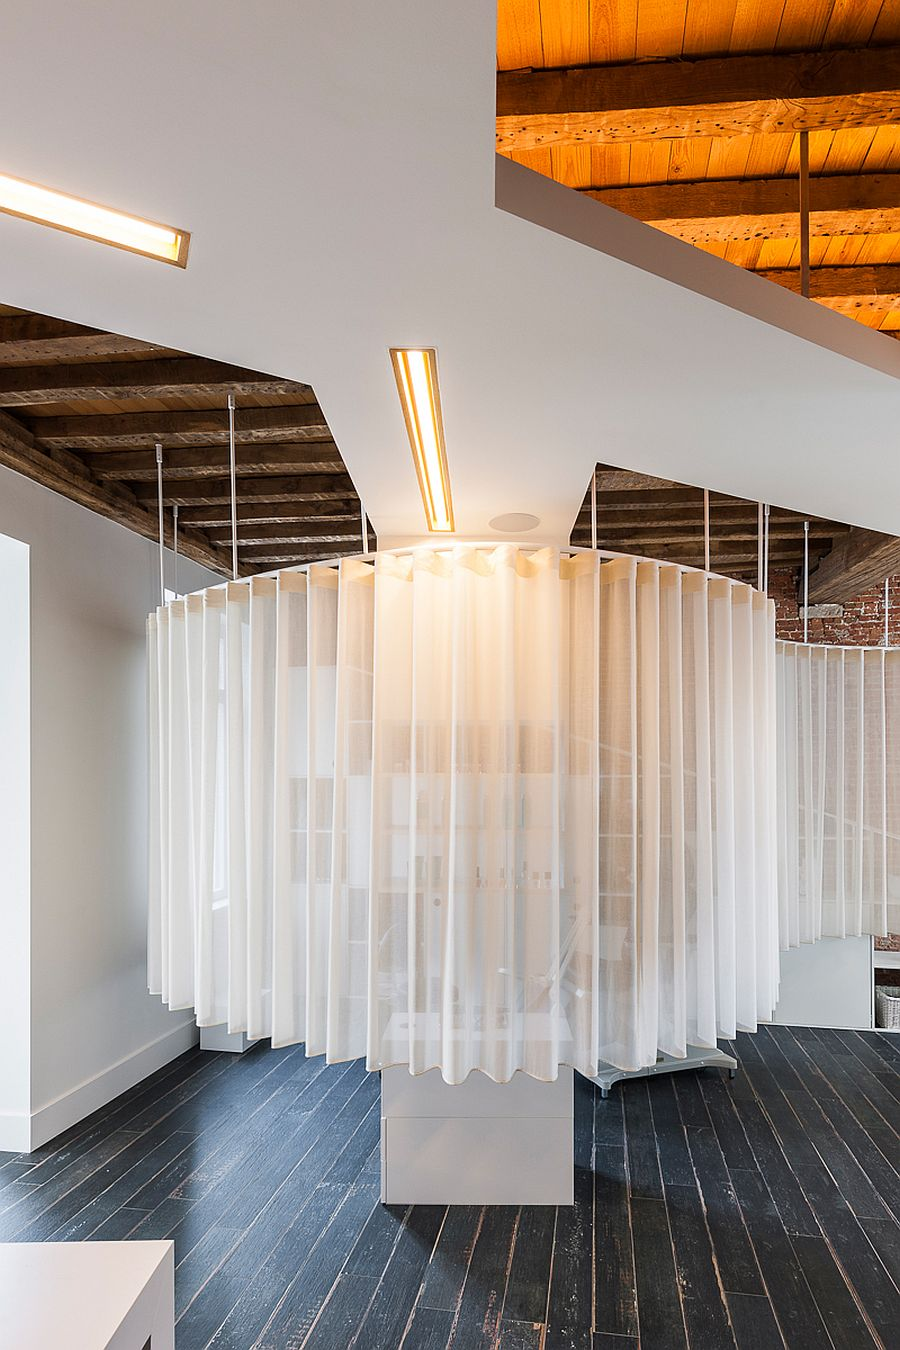 White-ceiling-lighting-with-golden-glint-and-smart-design-transform-the-industrial-space